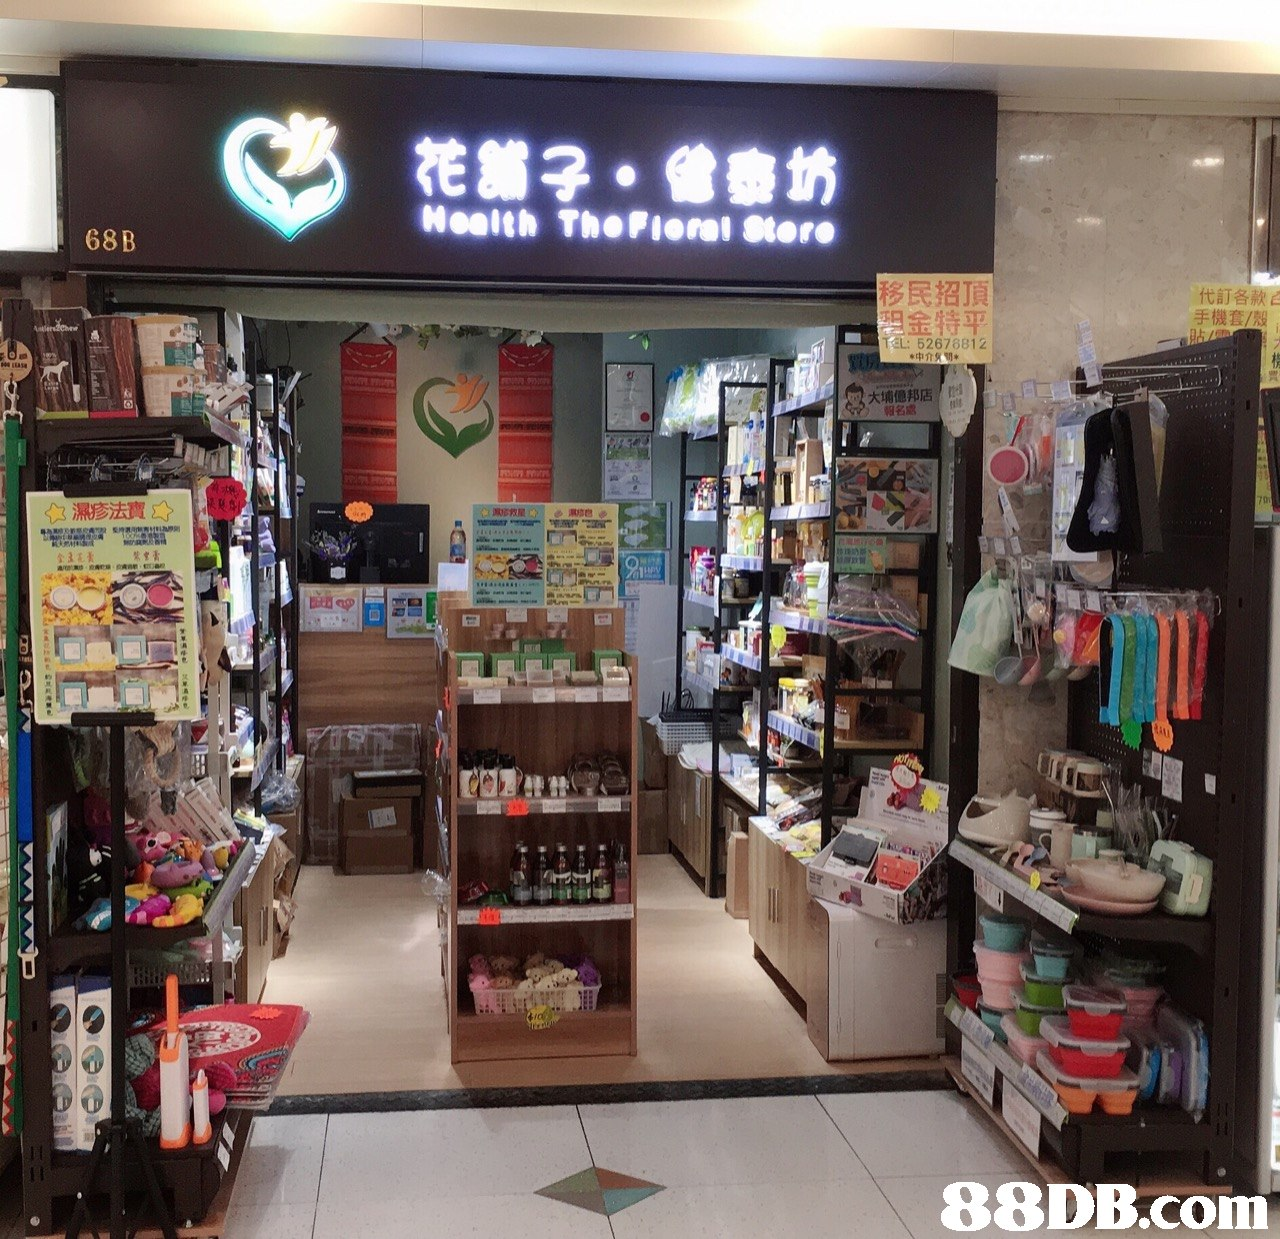 花 68B 移民招頂 代訂各款 金特平 TEL: 62678812   Product,Retail,Building,Outlet store,Convenience store